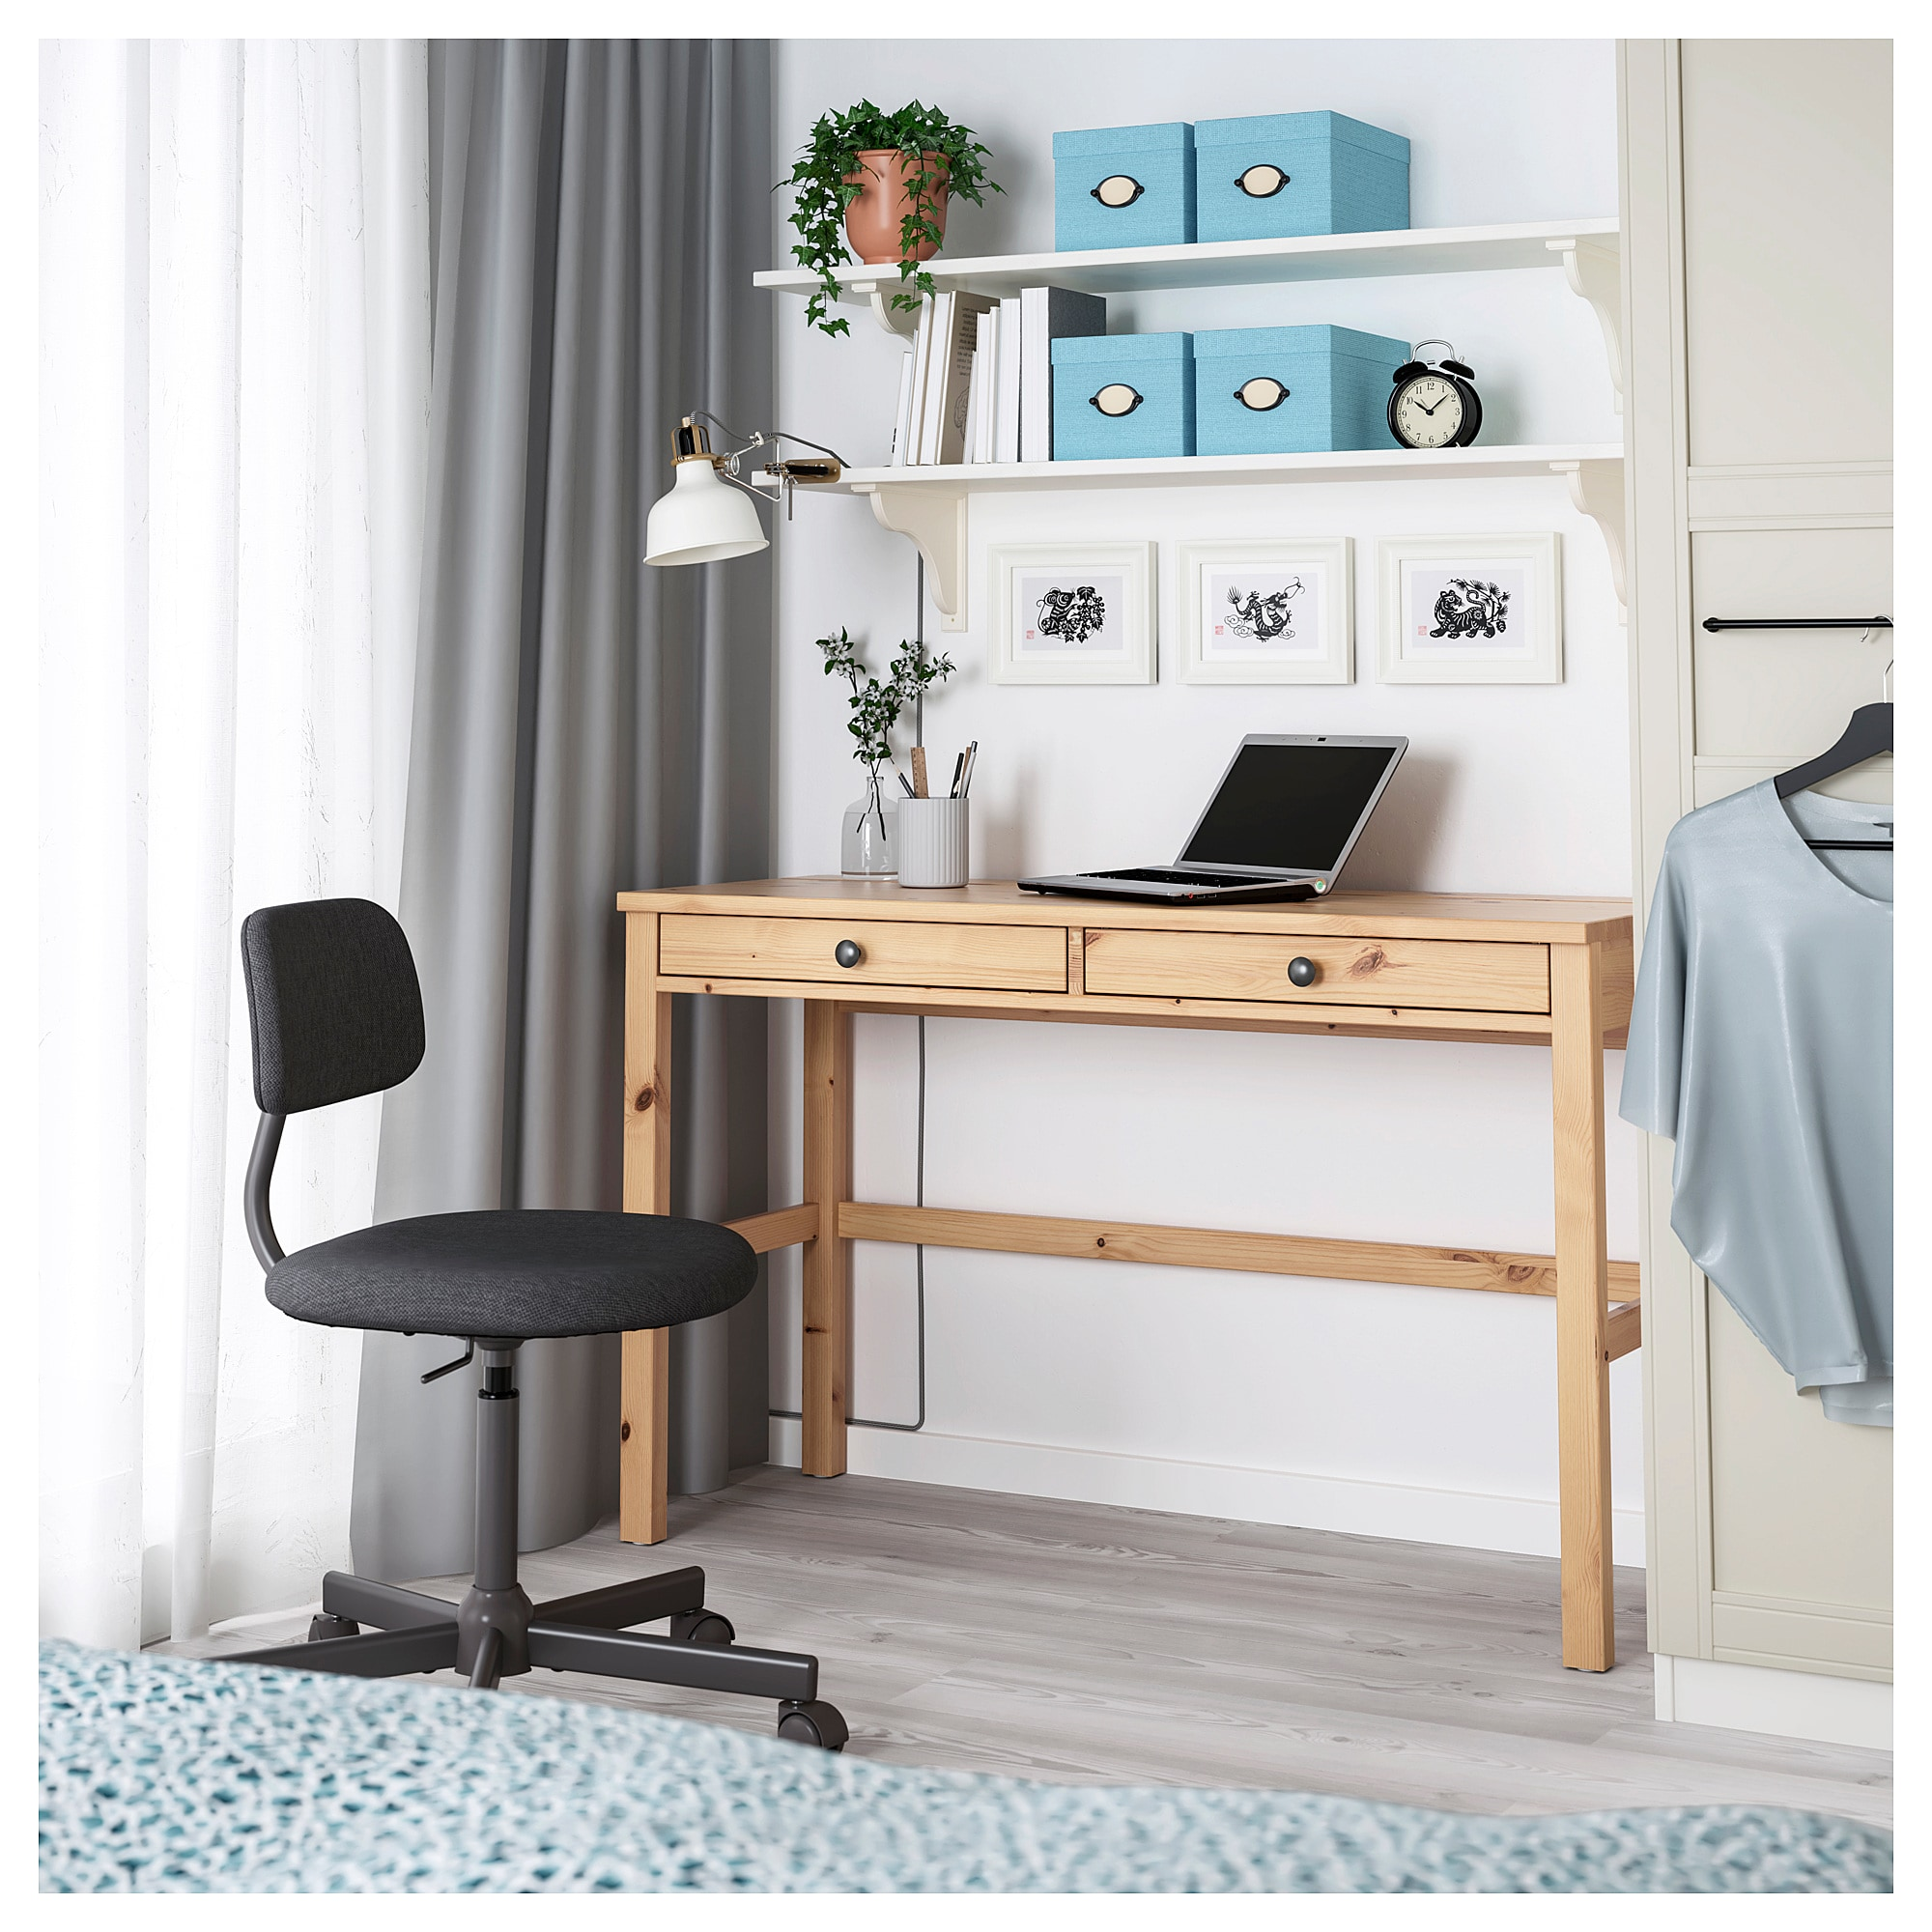 Ikea Hemnes Light Brown Desk With 2 Drawers Ikea Hemnes Desk Hemnes Ikea Hemnes